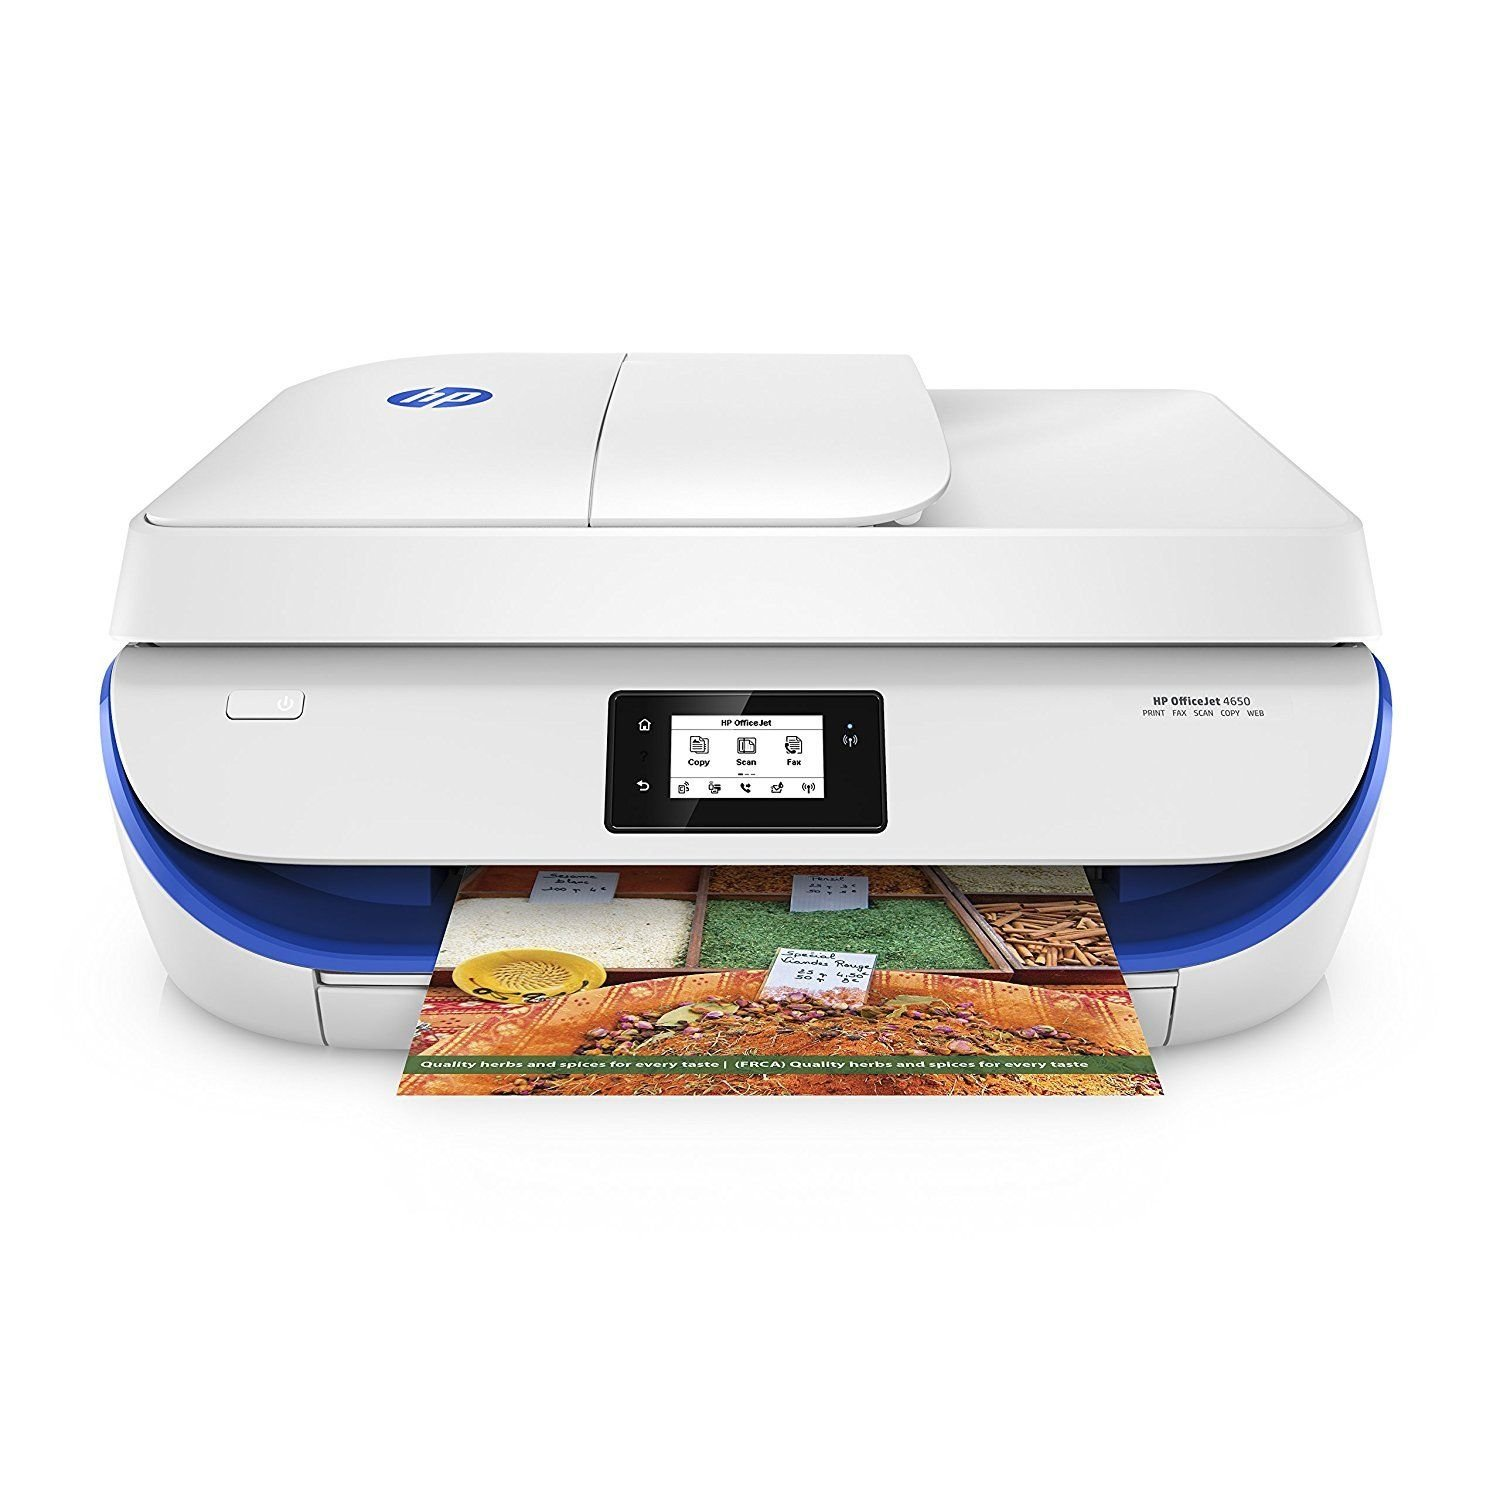 HP OfficeJet 4650 Wireless All-in-One Photo Printer, in White and Blue (Certified Refurbished)